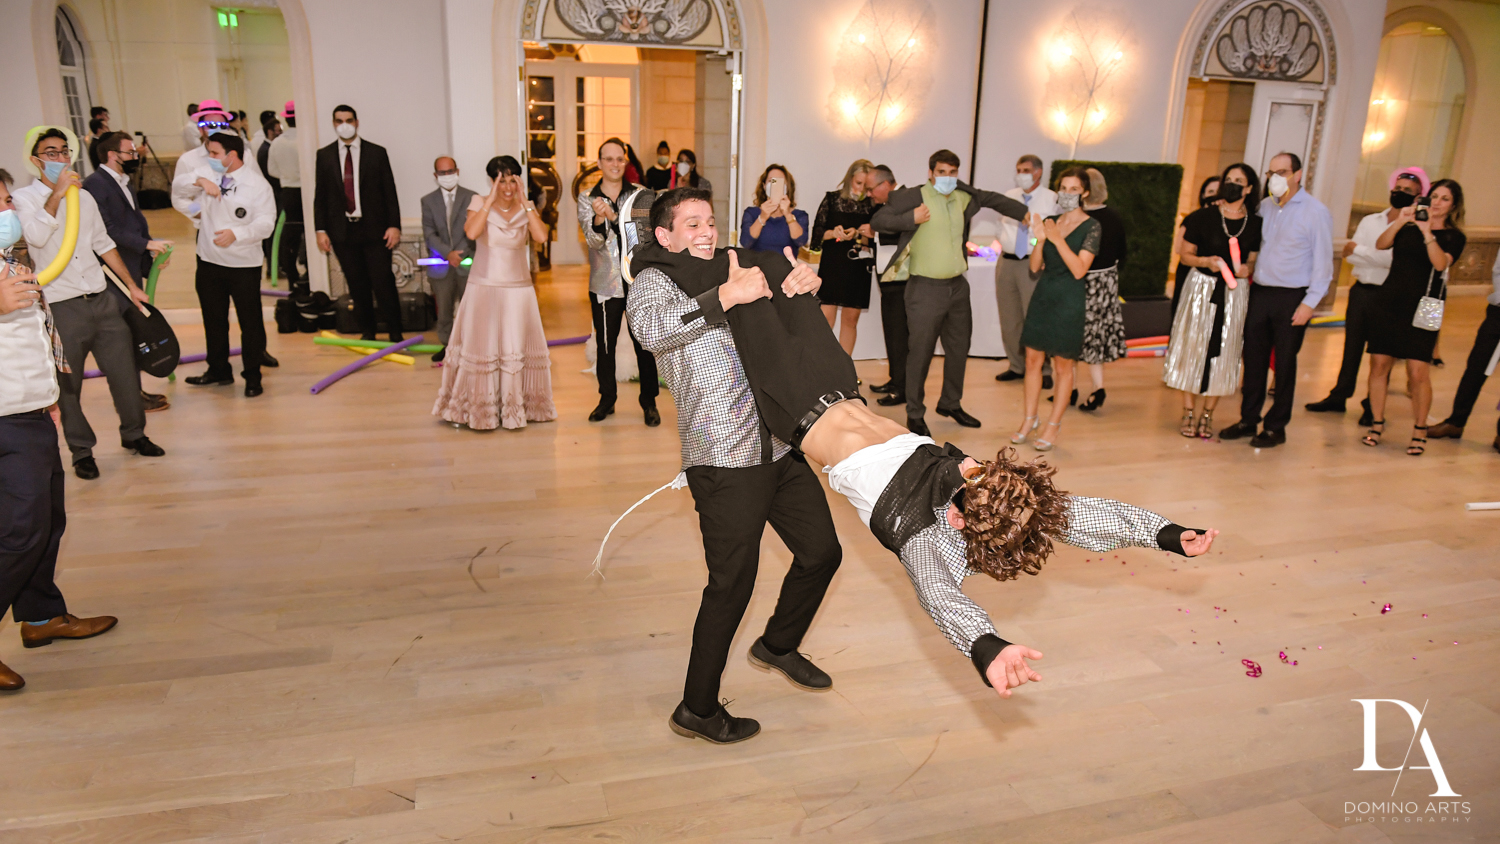 crazy fun party traditions at Luxury Summer Wedding at The Colony Hotel Palm Beach by Domino Arts Photography